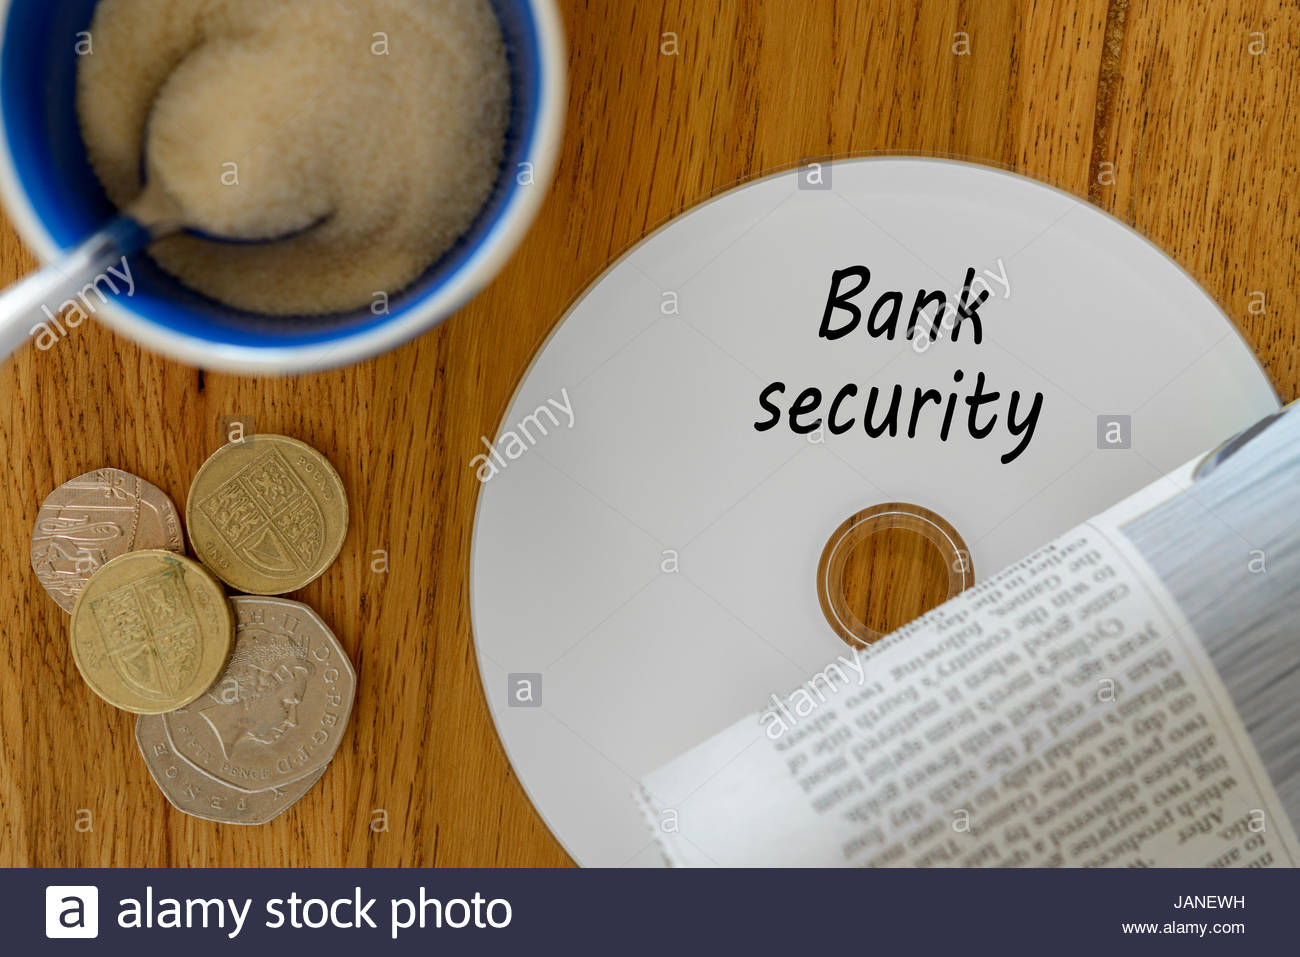 Bank security, data disc left on cafe table, Dorset, England. - Stock Image